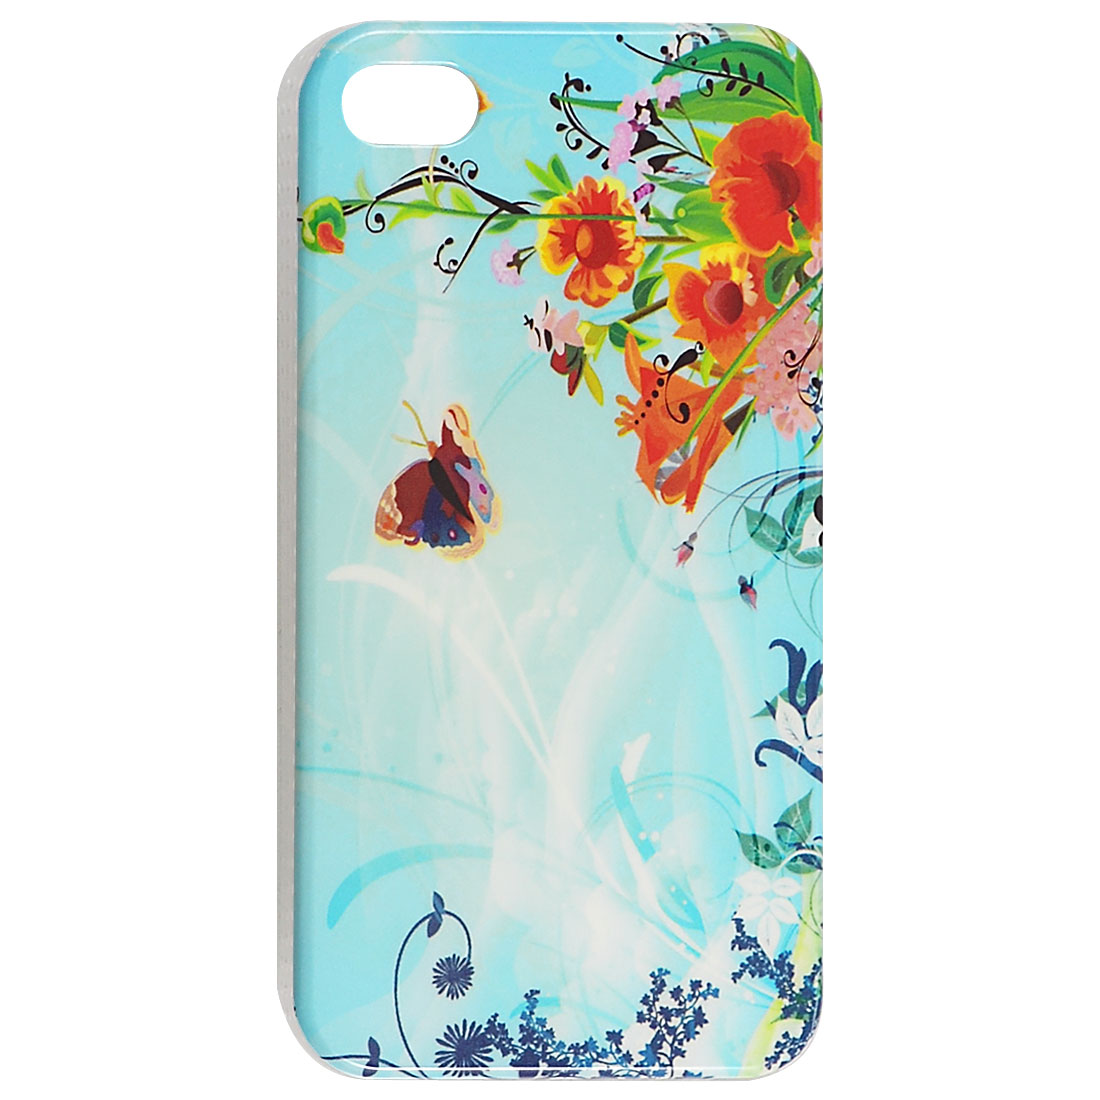 IMD Flowery Hard Plastic Guard Back Protector for iPhone 4 4G 4S